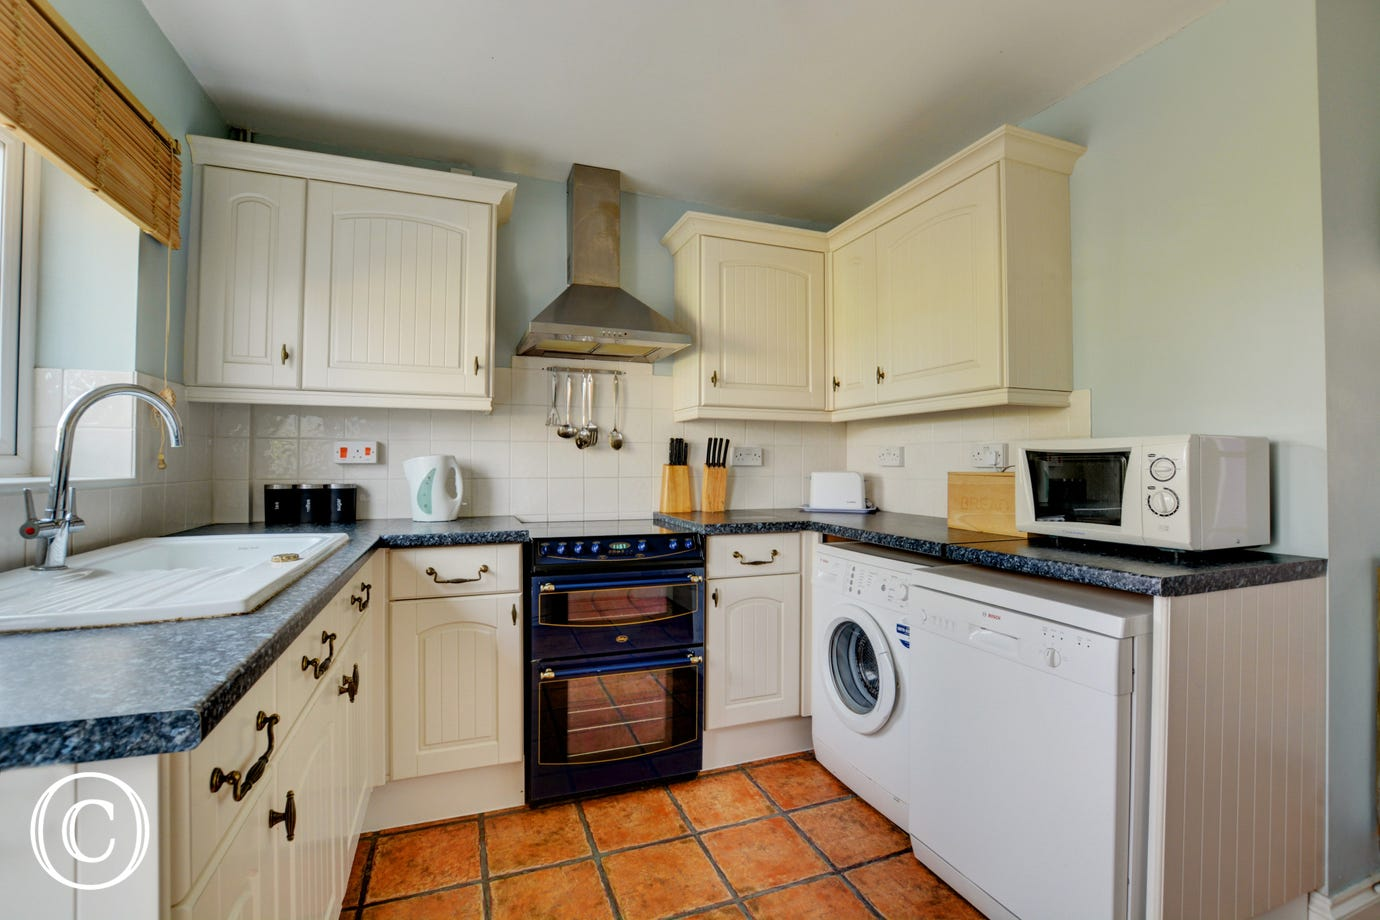 Well equipped, modern kitchen with an electric cooker